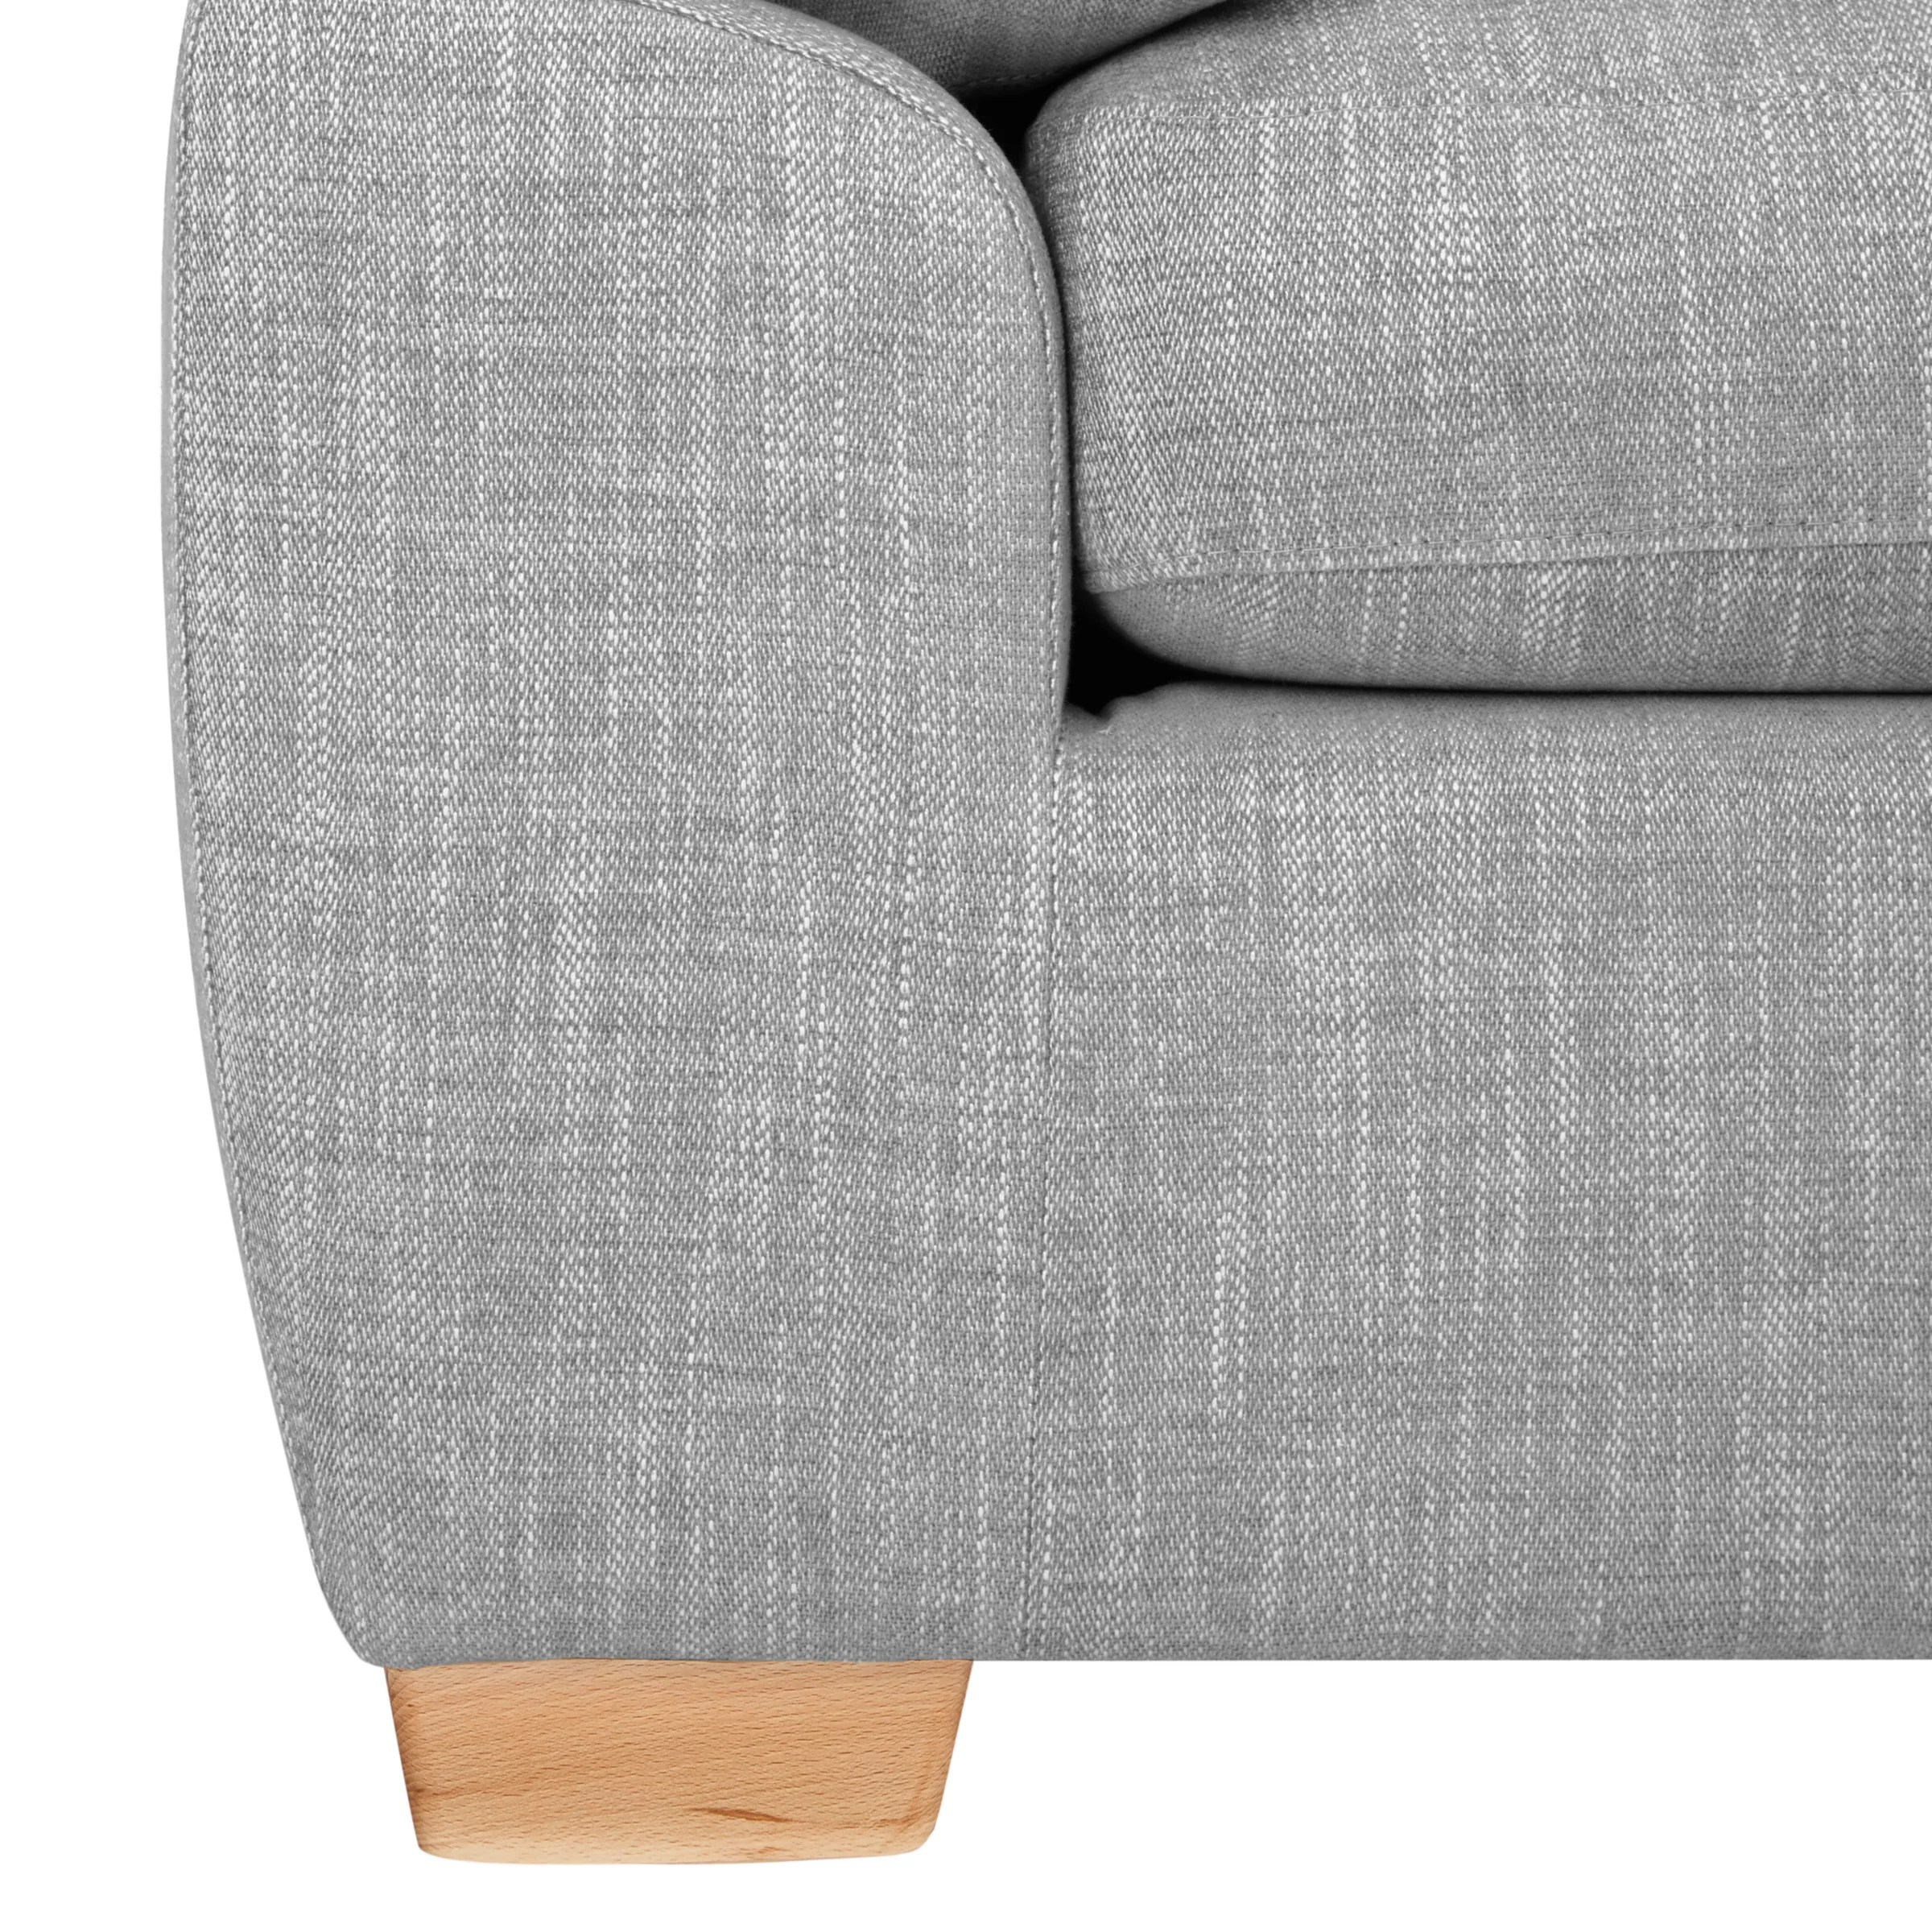 camden sofa john lewis extra deep seated sectional and partners rhf corner end chaise unit